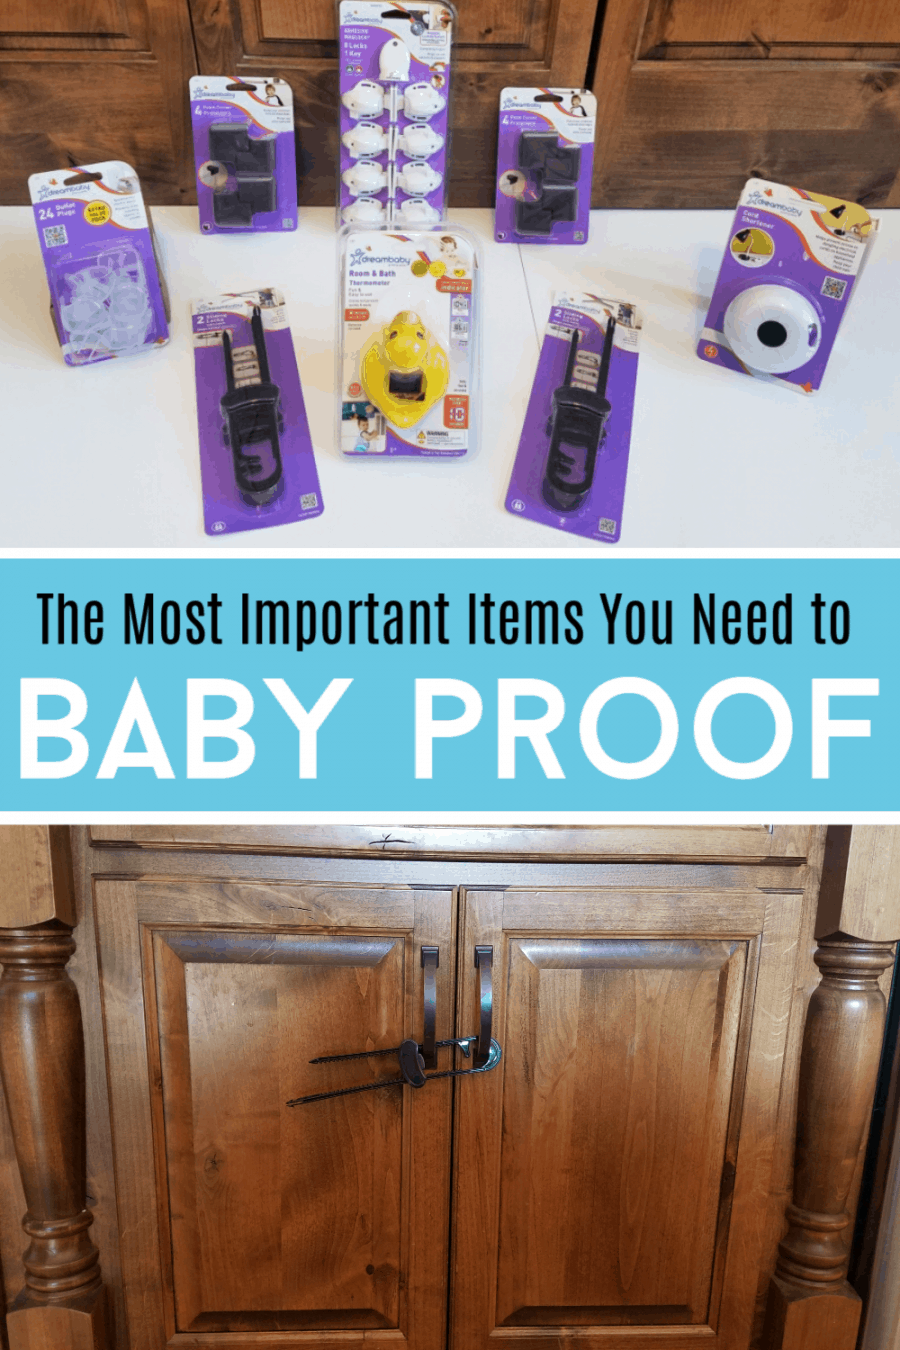 Everything you need to know to babyproof